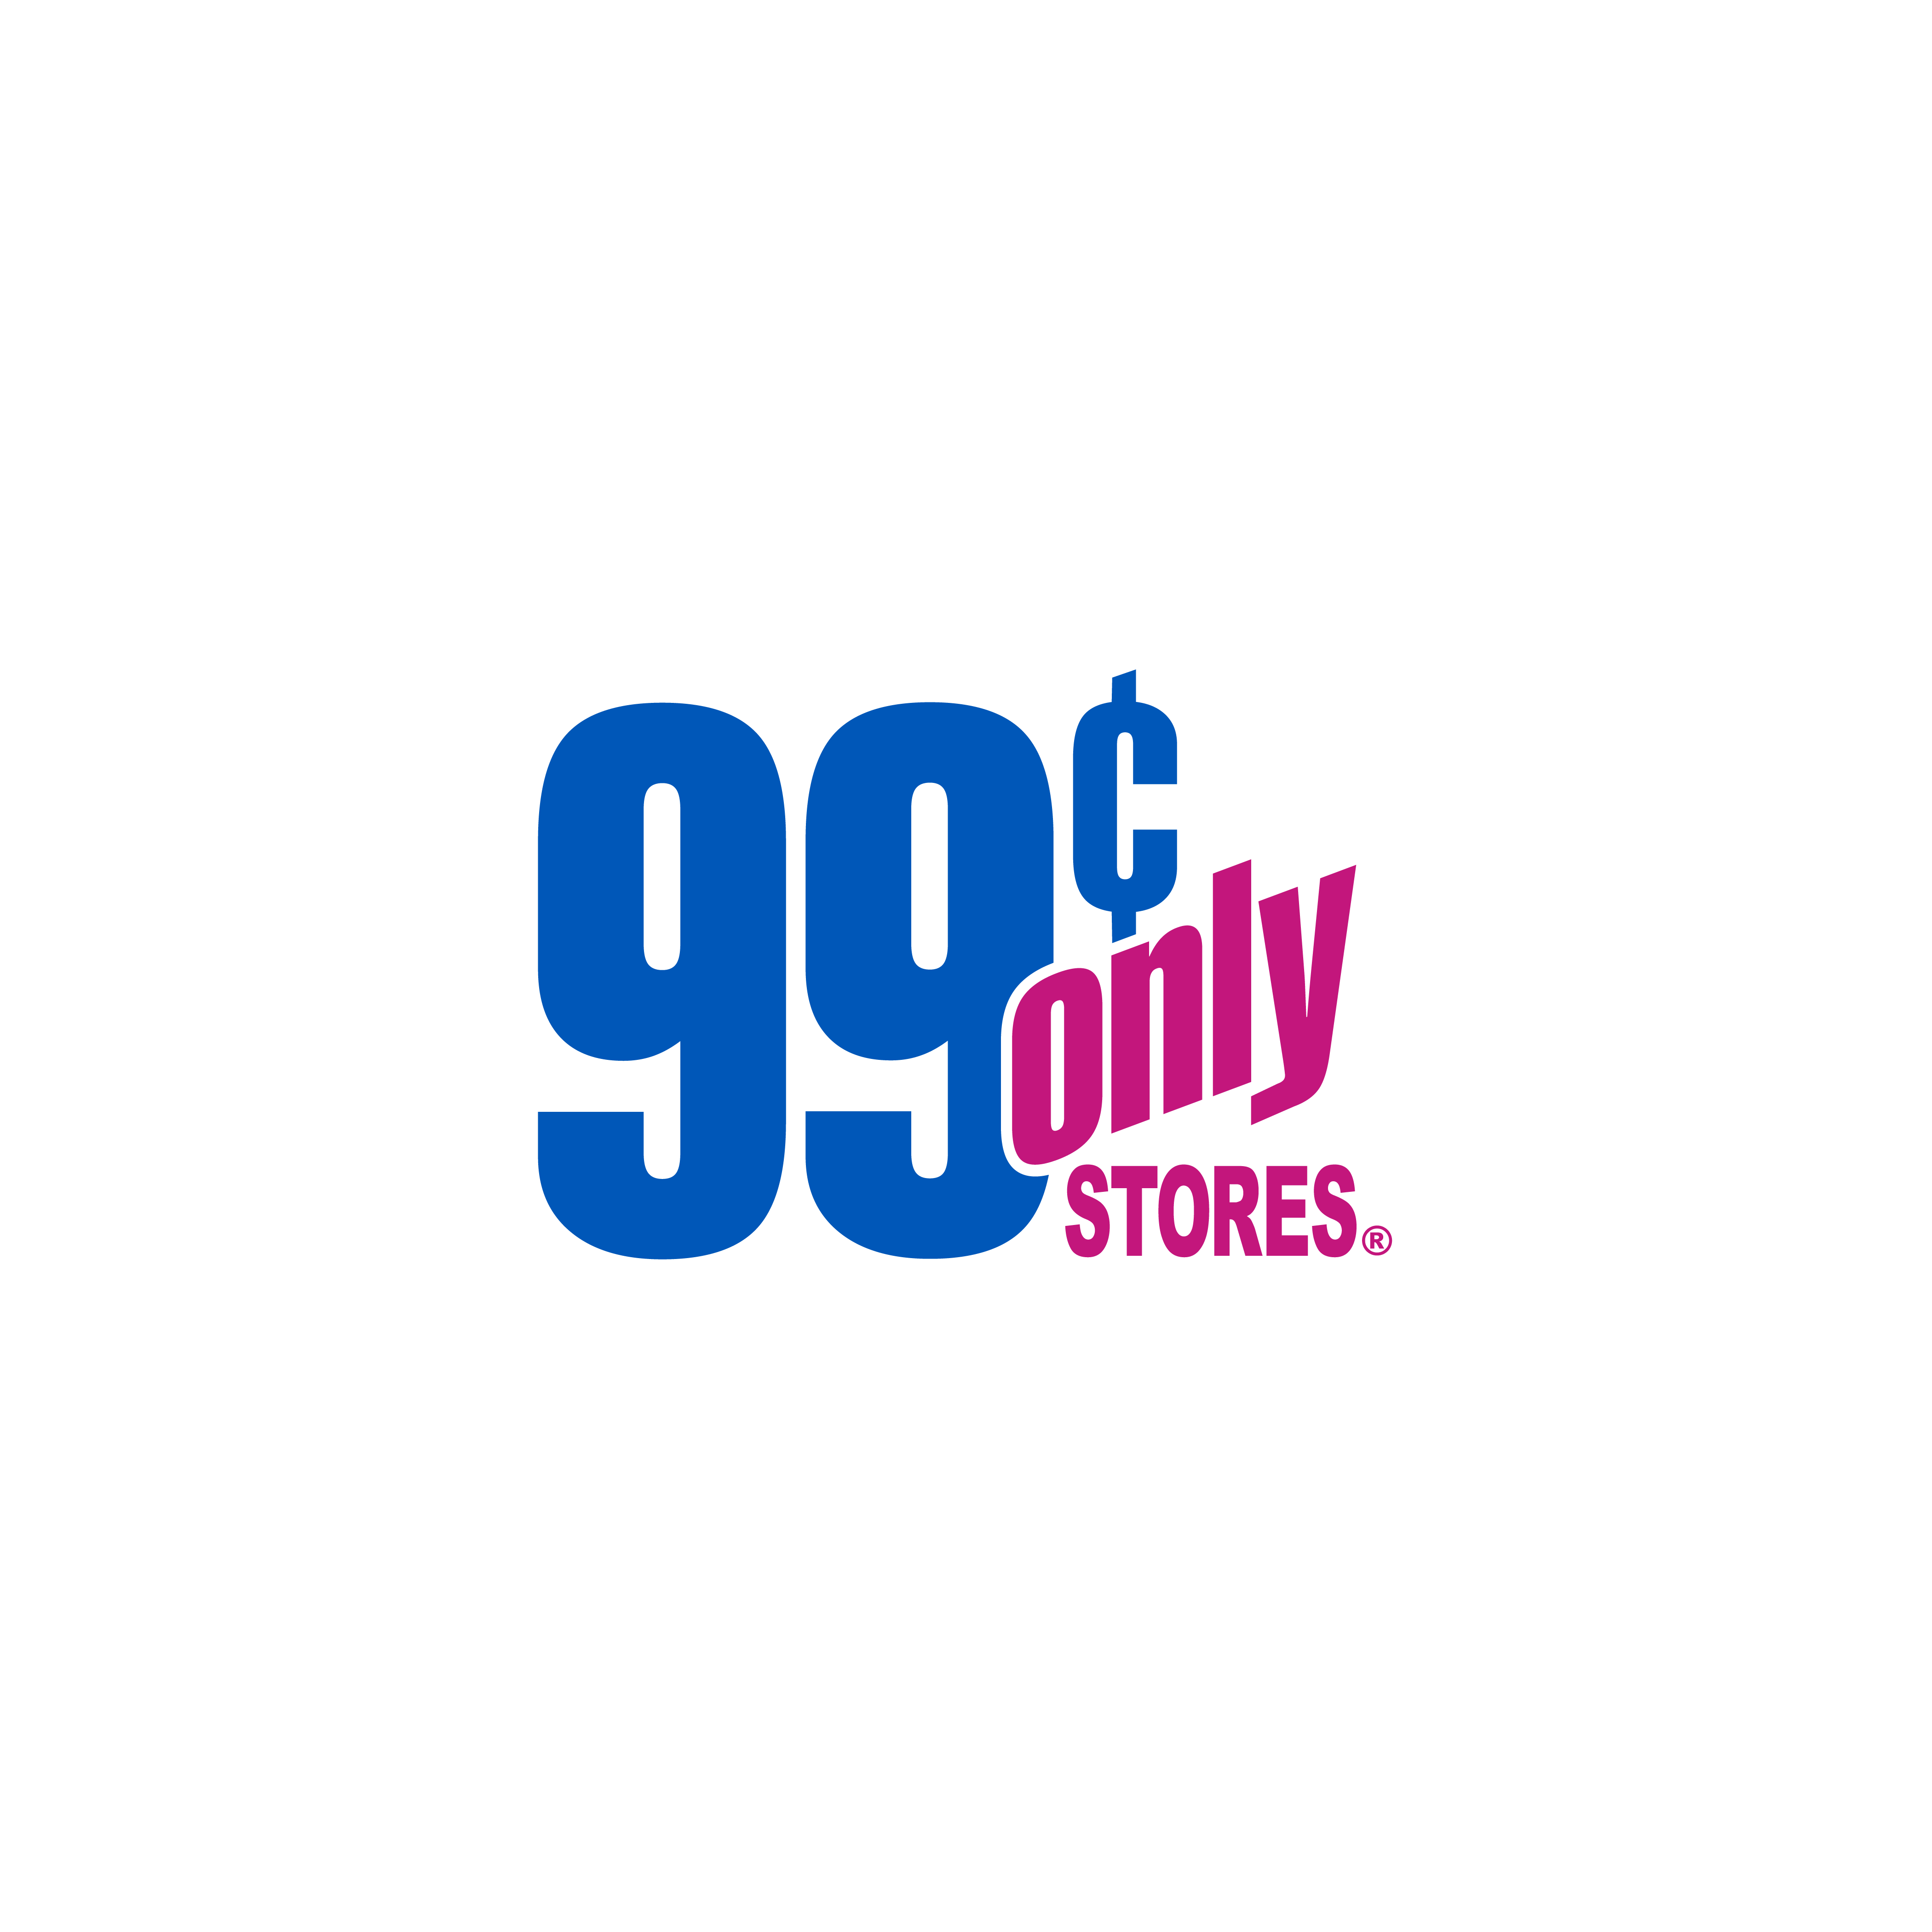 99 Cents Only Stores Employment Information Center